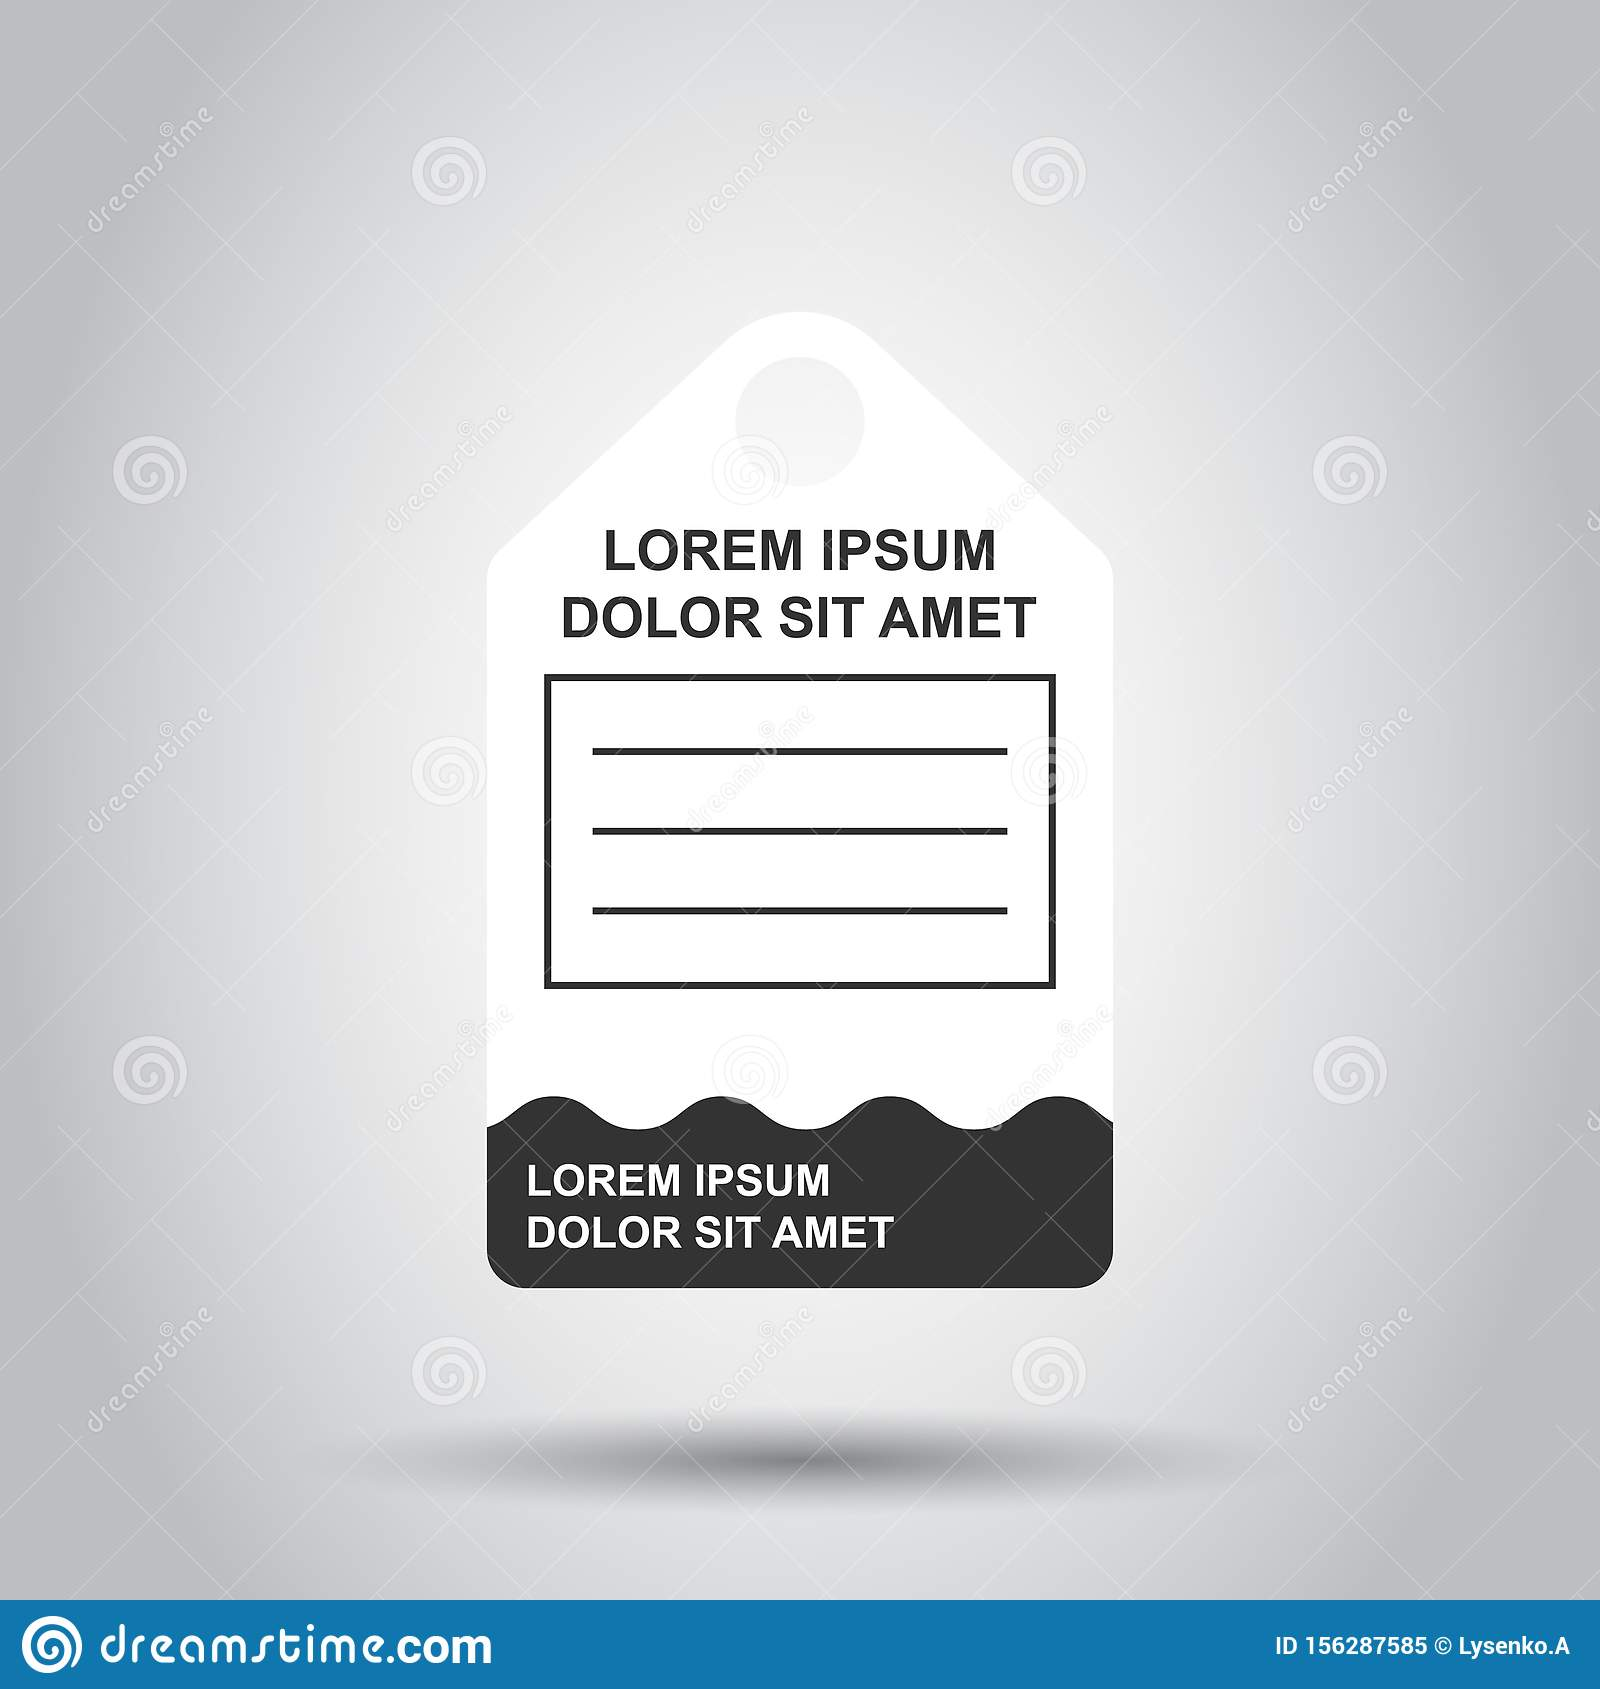 Price tag icon in flat style. Coupon label vector illustration on isolated background. Sale sticker business concept